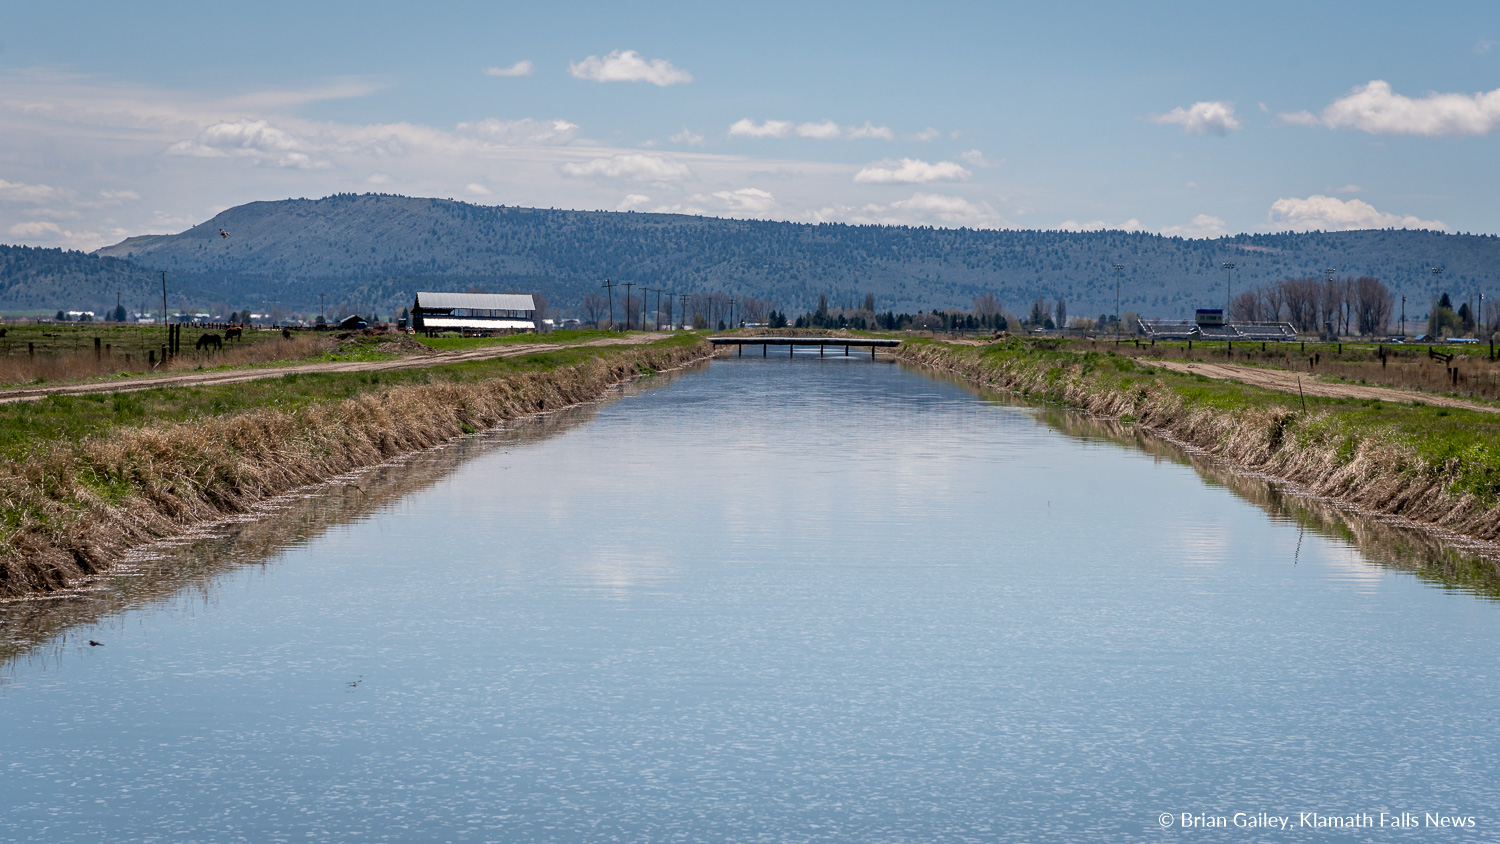 KID was forced to shut down the A-Canal following a notice from the Bureau of Reclamation that waster is no longer available from Upper Klamath Lake. (A-Canal File Photo, Brian Gailey)